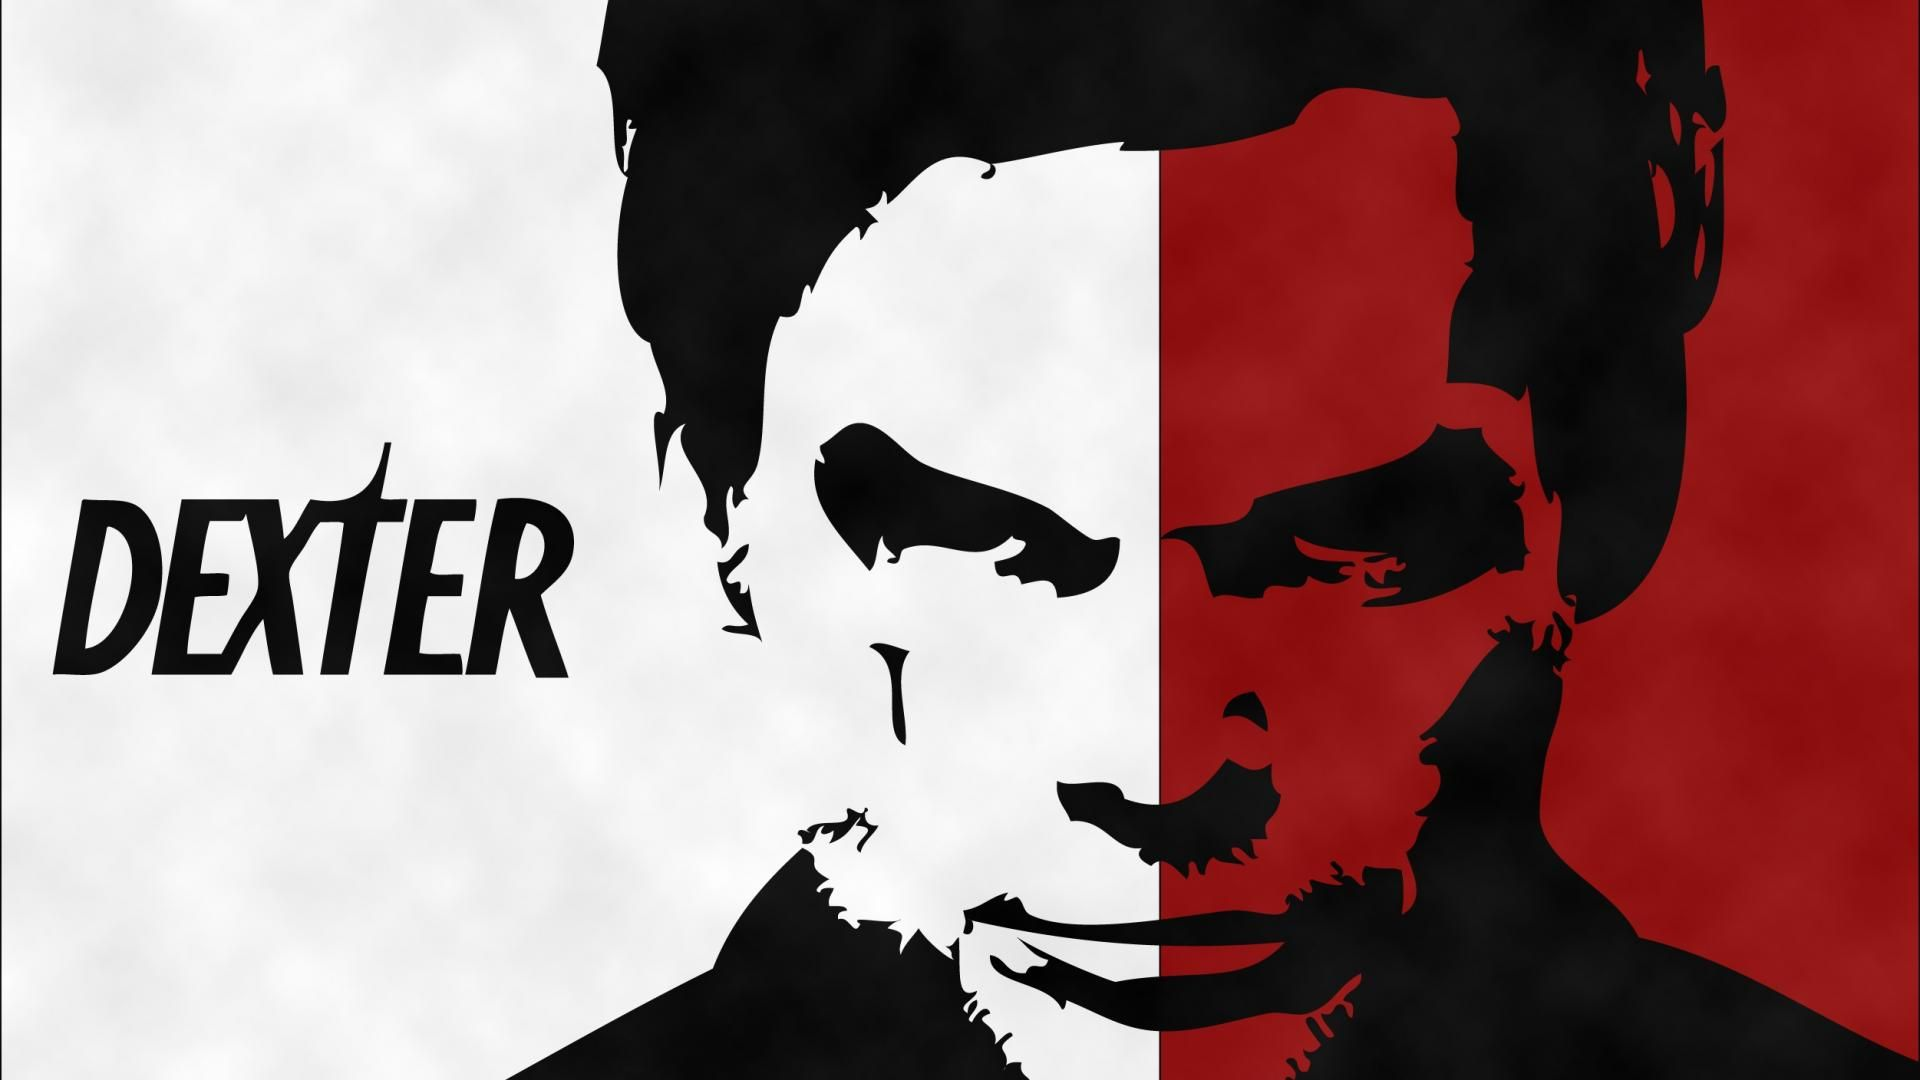 Dexter Hd Wallpapers Free Download Dexter Wallpaper Dexter Seasons Dexter